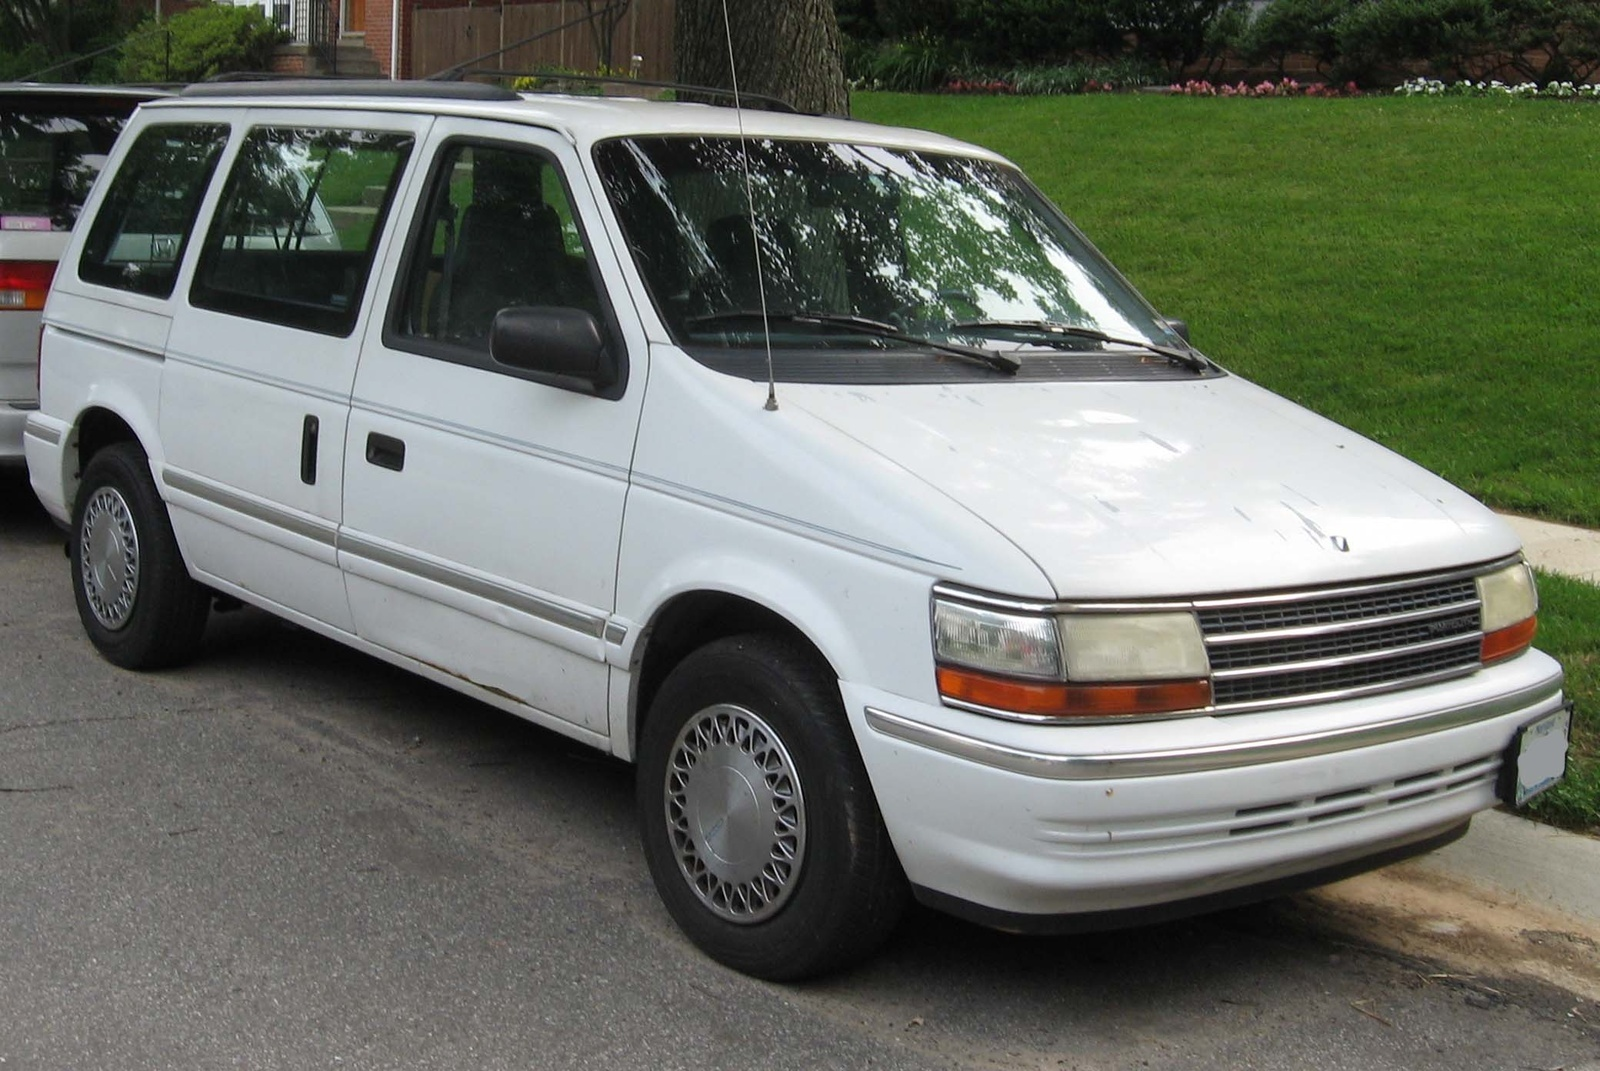 Plymouth Voyager Dr Le Passenger Van Pic X on 1991 Dodge Grand Caravan